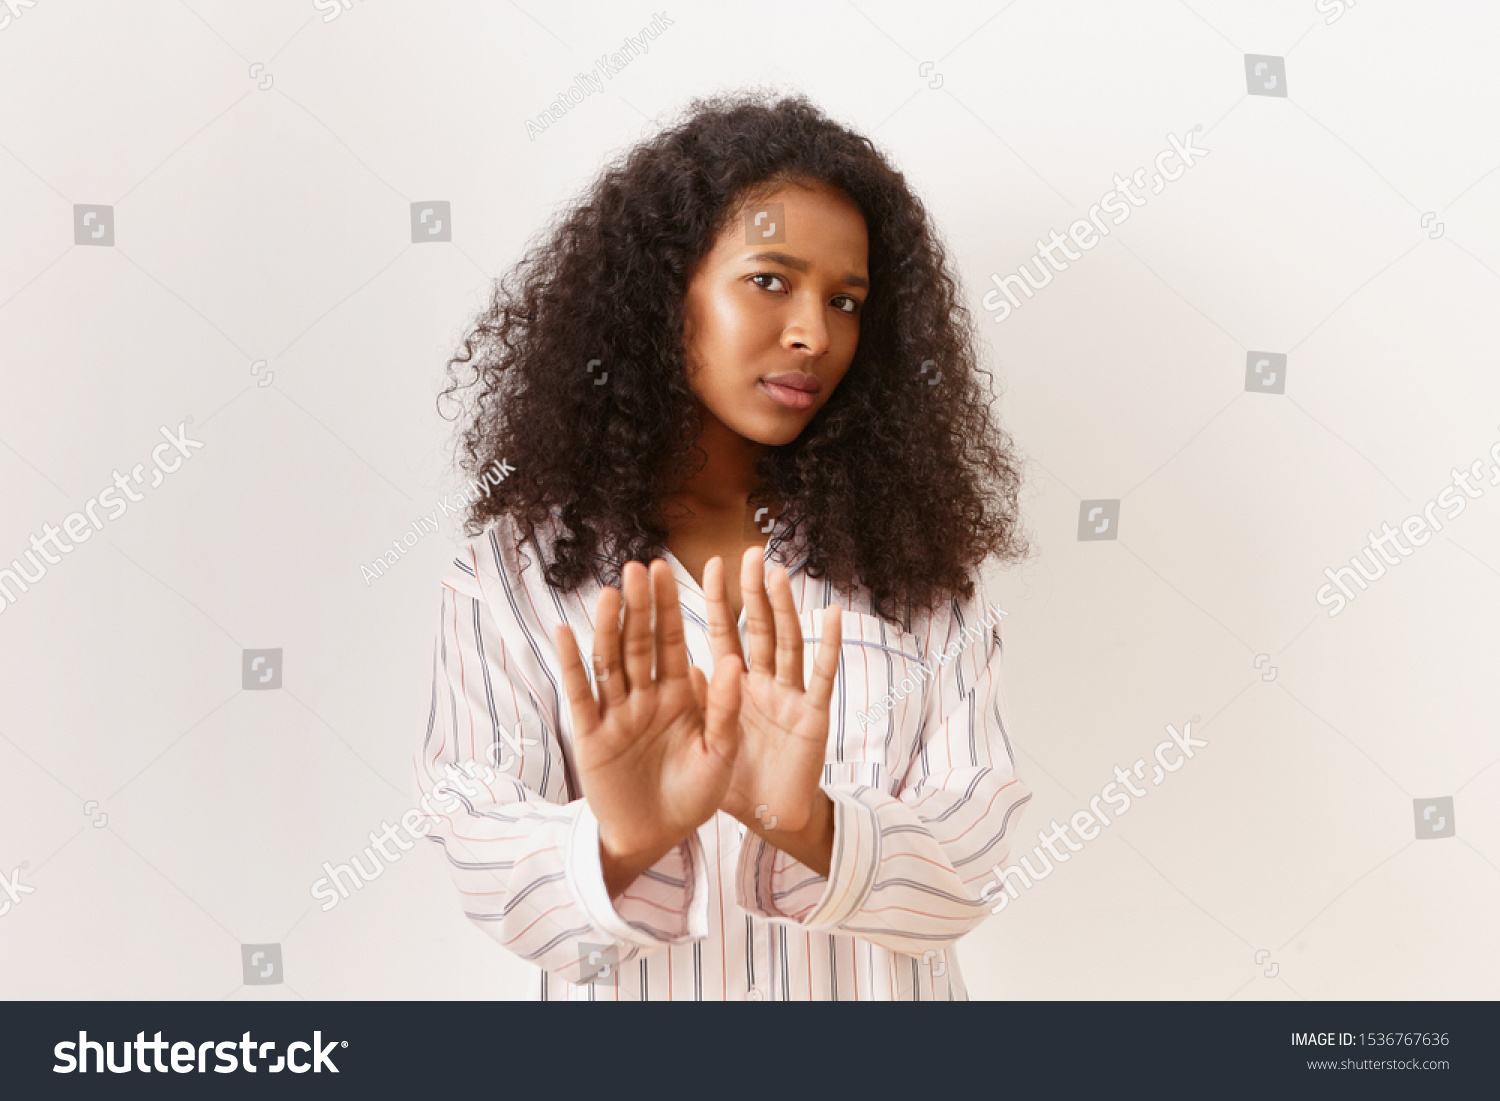 Human facial expressions and body language. Studio image of scared displeased young female in striped pajamas expressing negative reaction, reaching out palms, saying No or Stop, being annoyed #1536767636